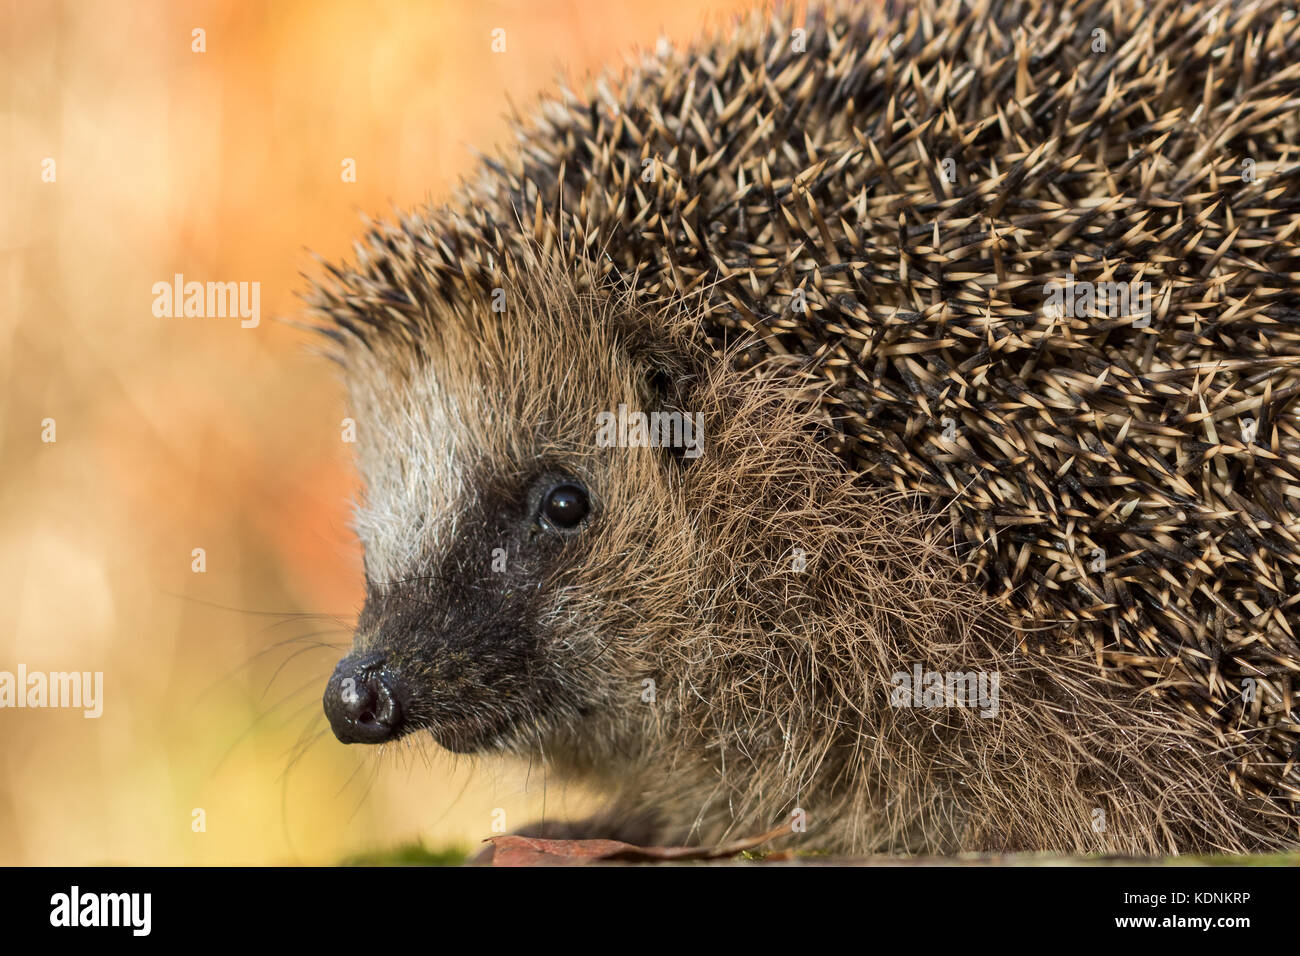 close portrait of European hedgehog, Erinaceus europaeus, in autumn colours - Stock Image